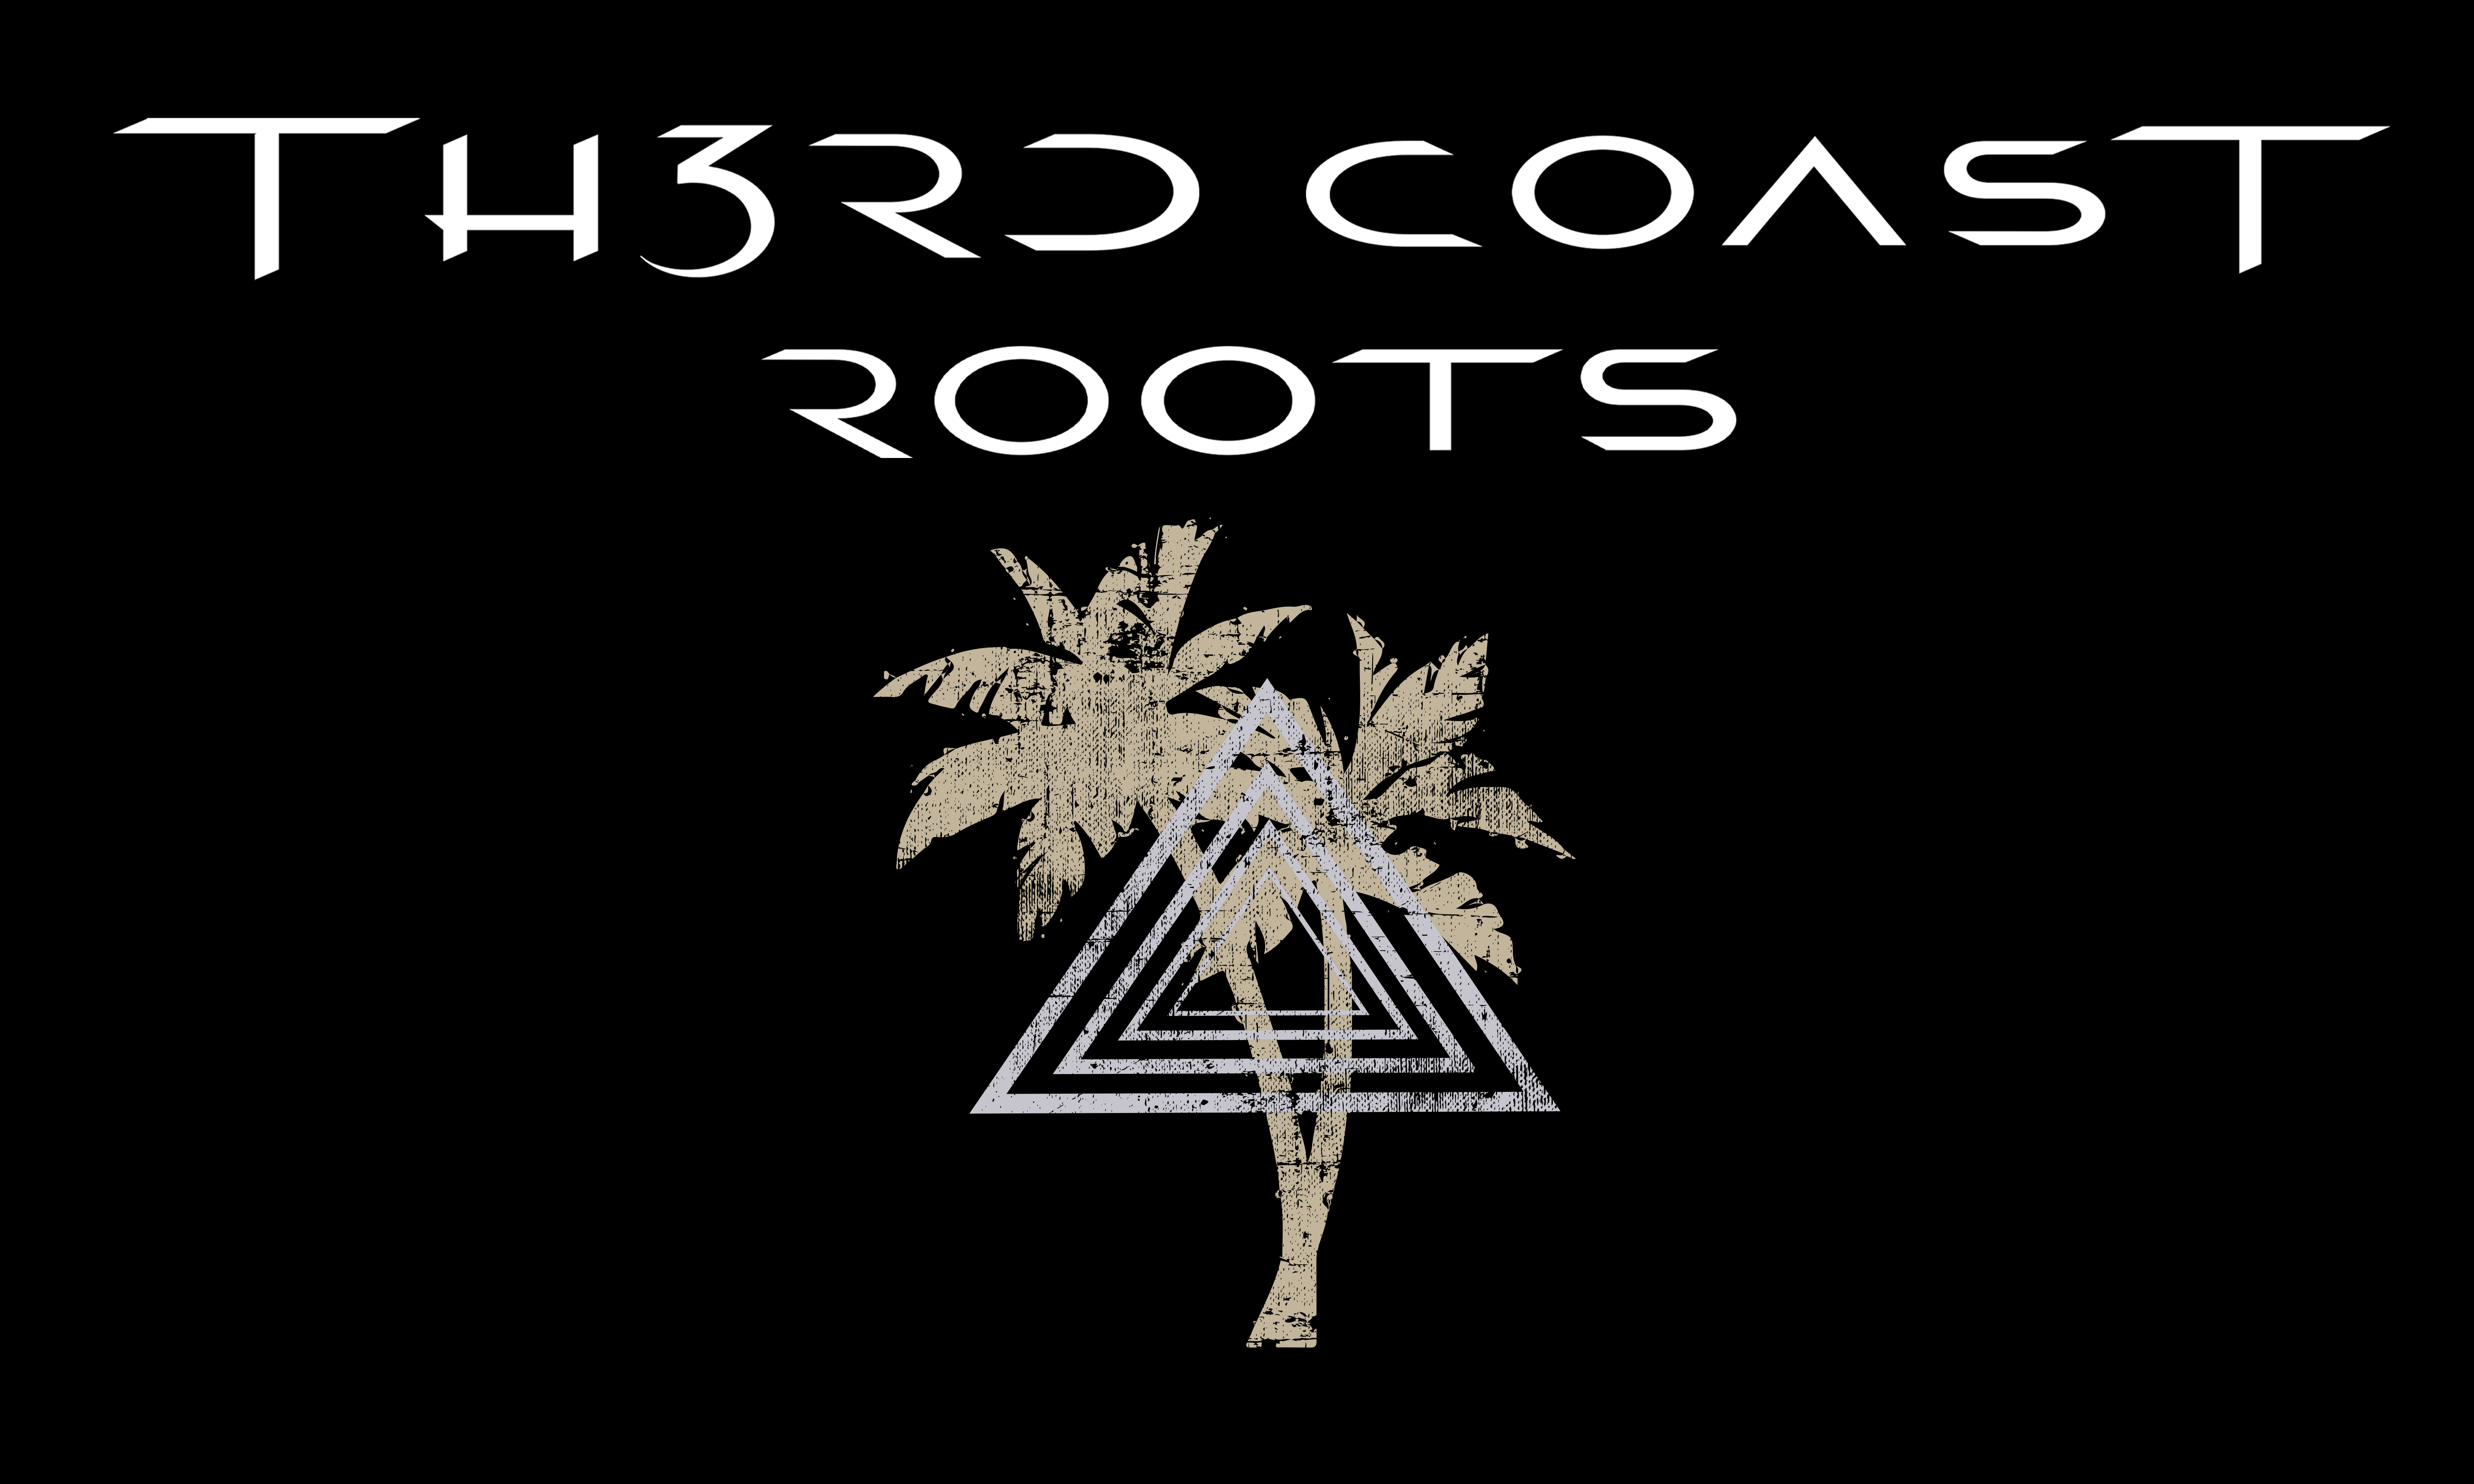 Th3rd Coast Roots Image